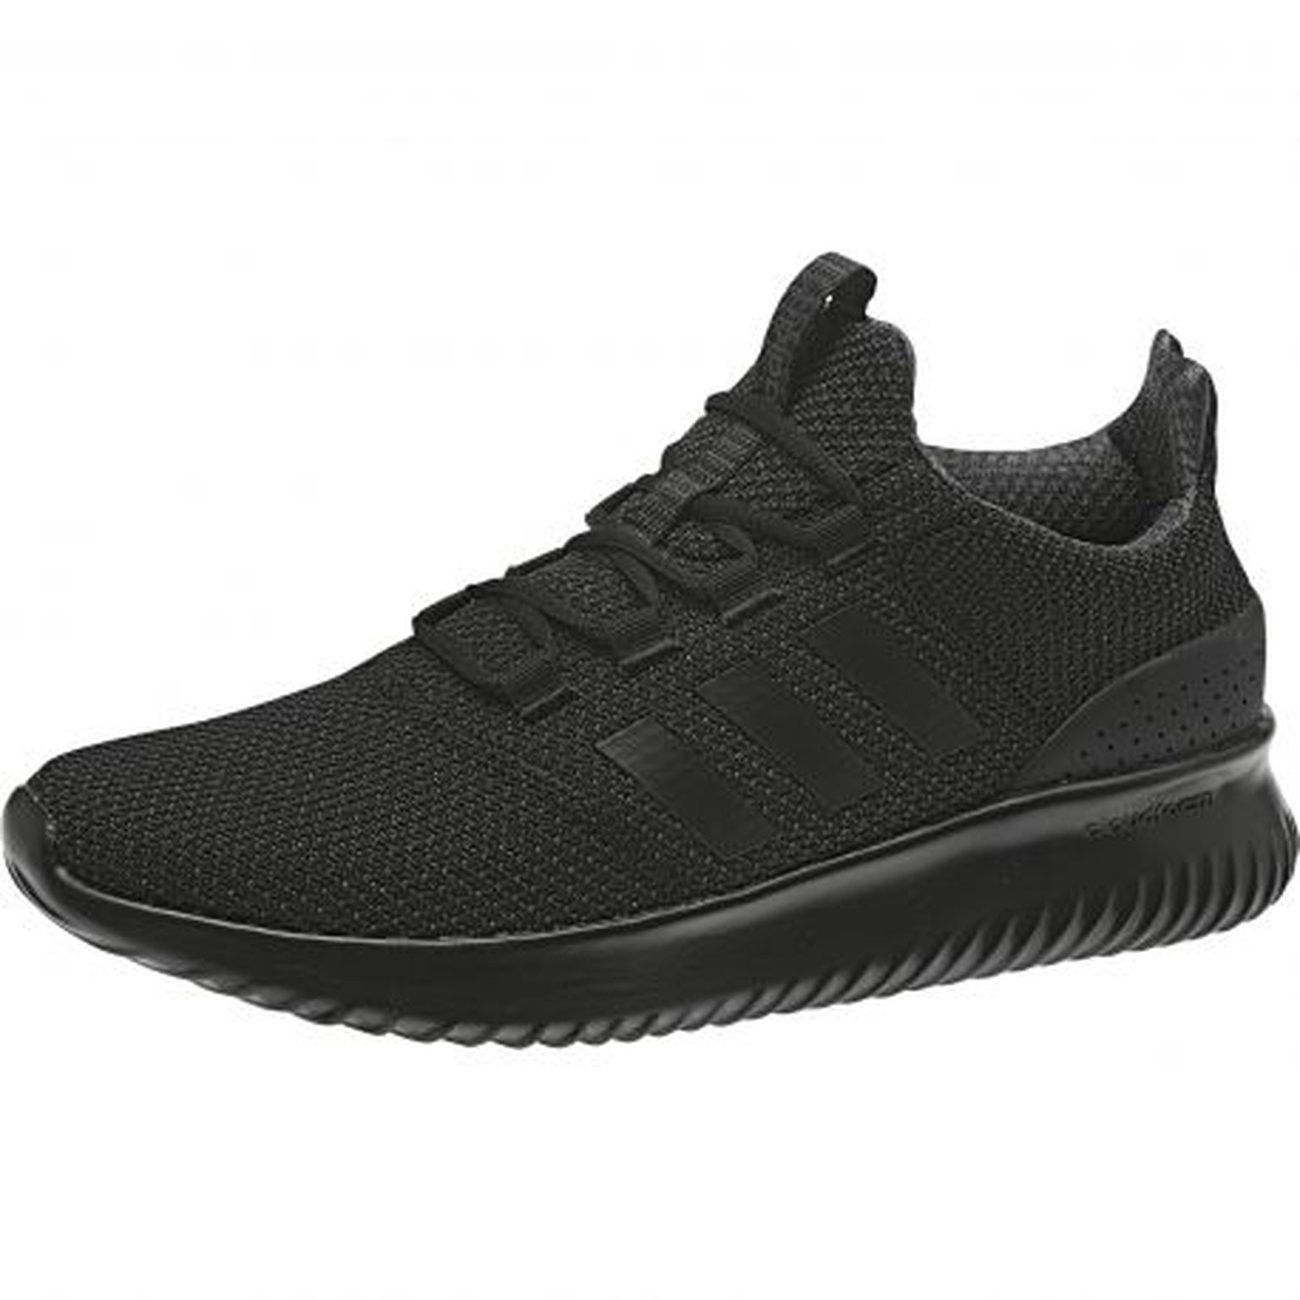 adidas chaussures sport homme